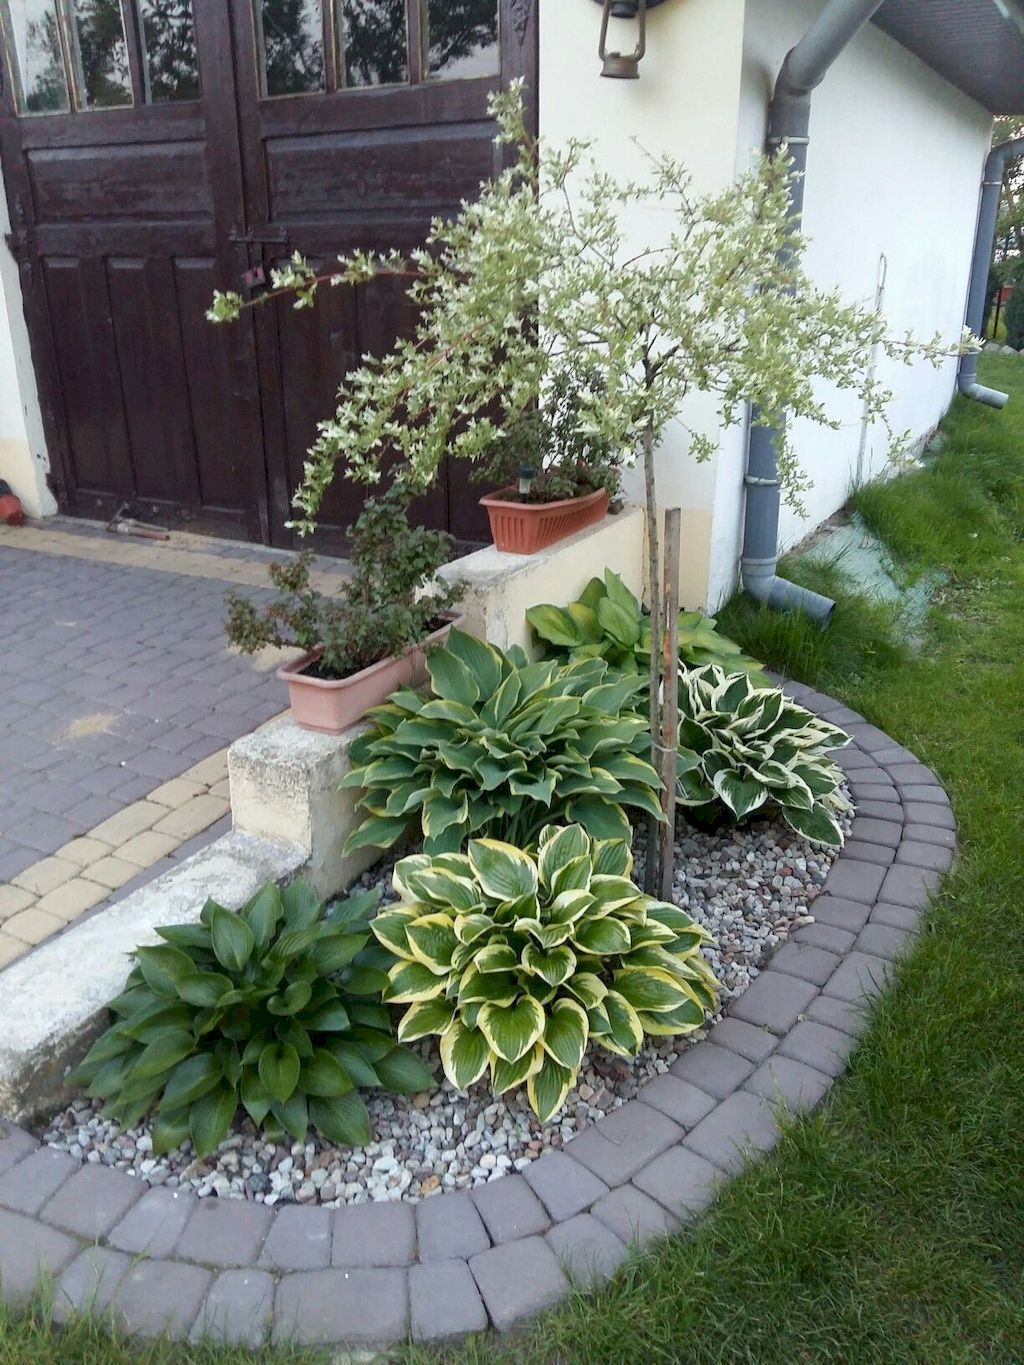 65 simple and beautiful front yard landscaping ideas garden 65 simple and beautiful front yard landscaping ideas garden landscaping front gardens and landscaping ideas workwithnaturefo